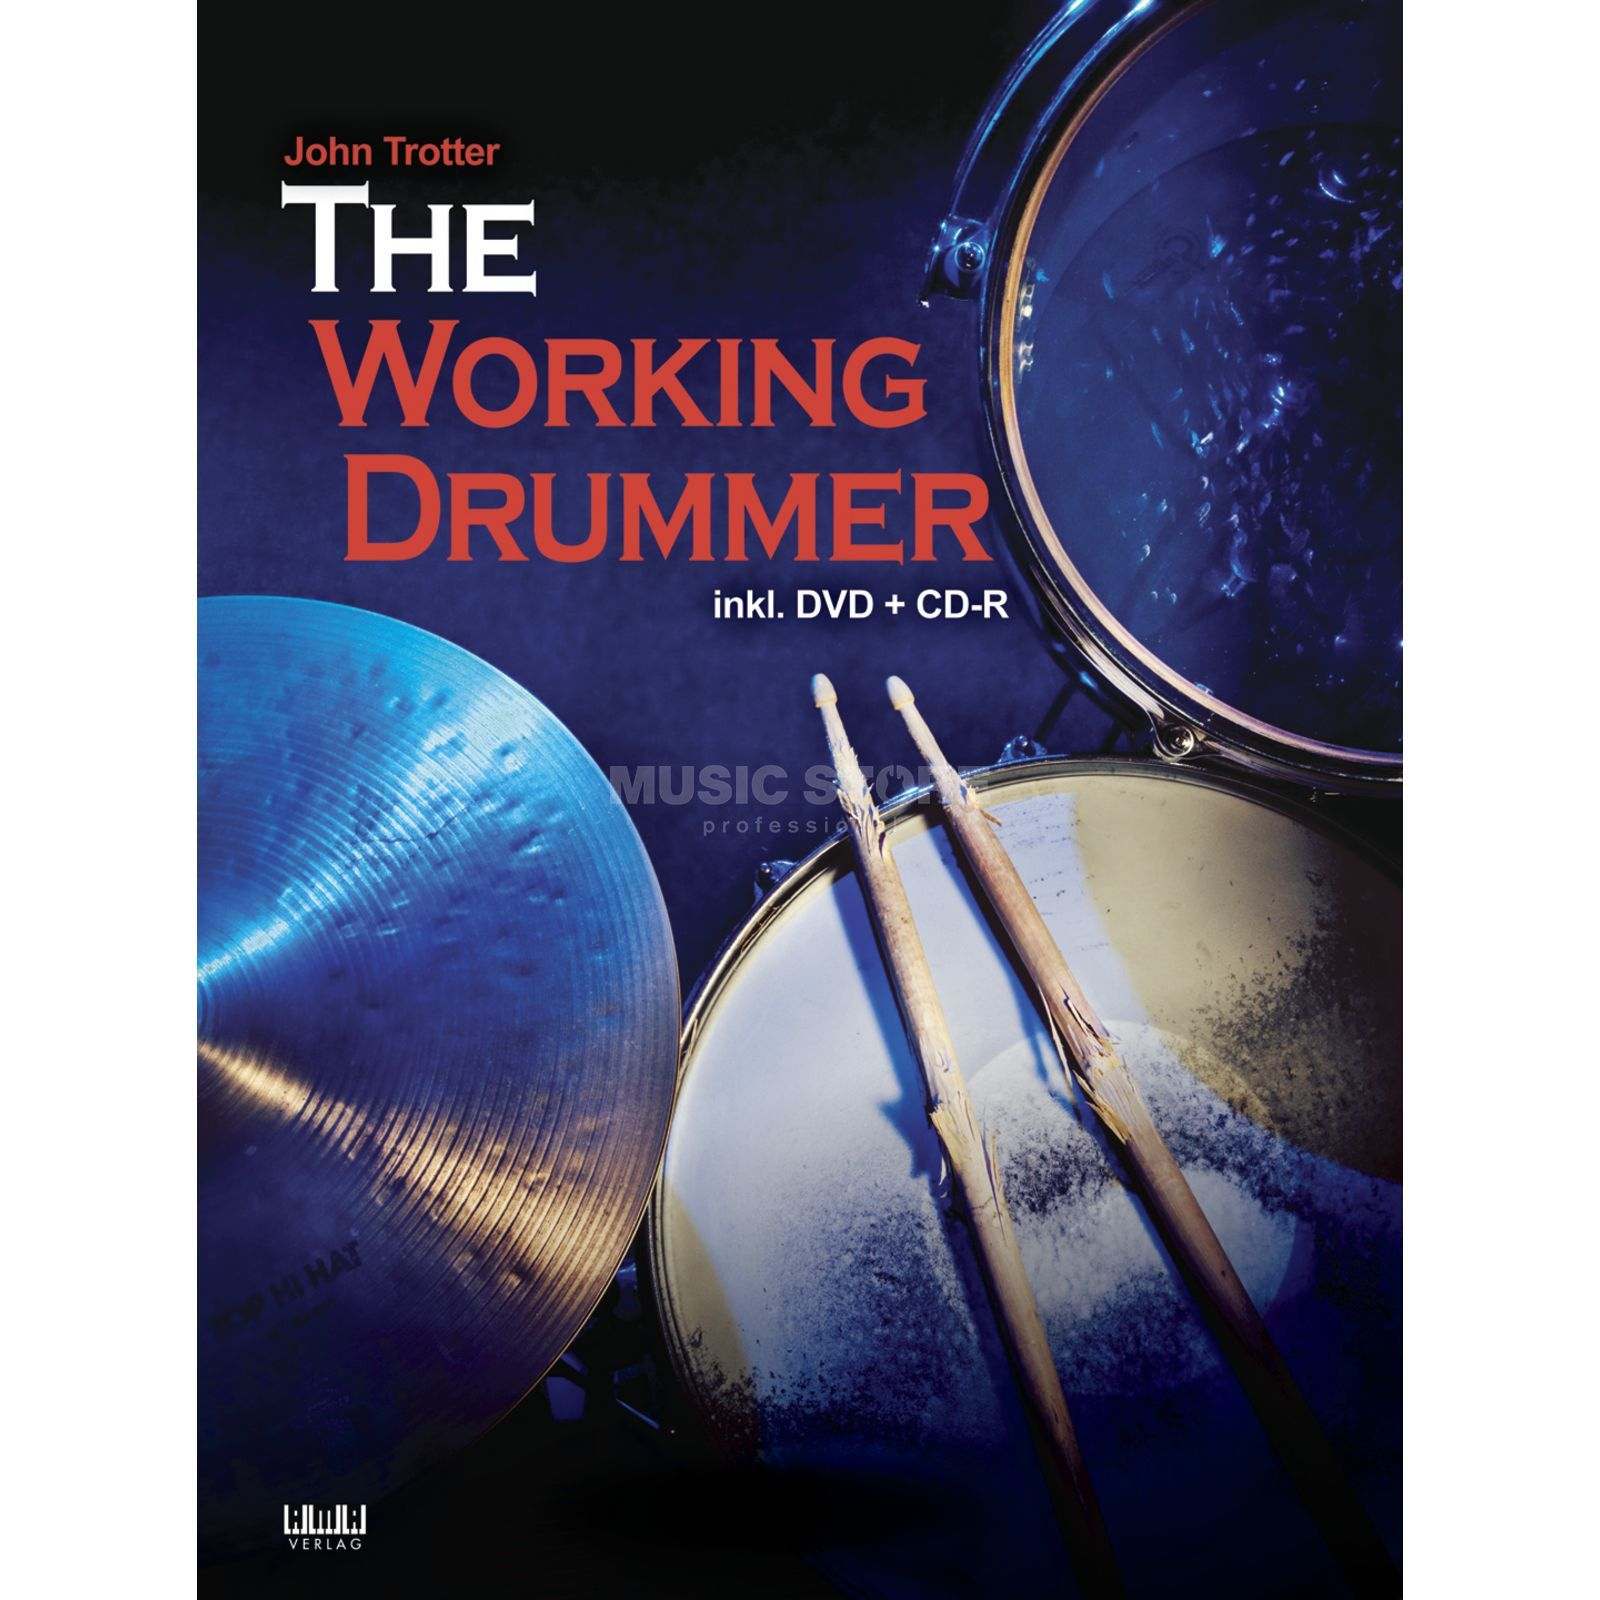 AMA Verlag The Working Drummer John Trotter, inkl. DVD+CD-R Produktbillede